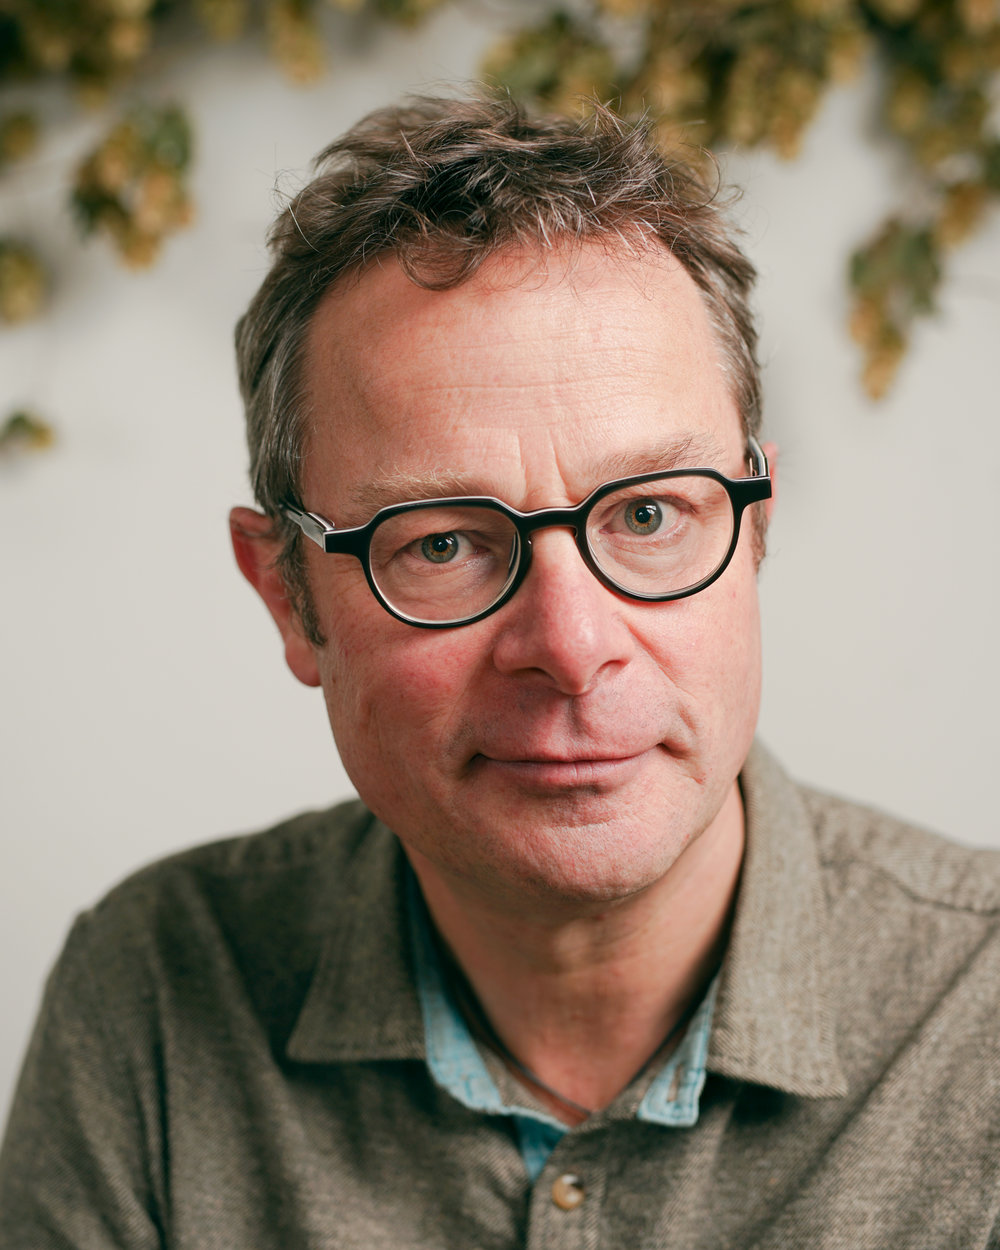 Hugh Fearnley-Whittingstall Portrait